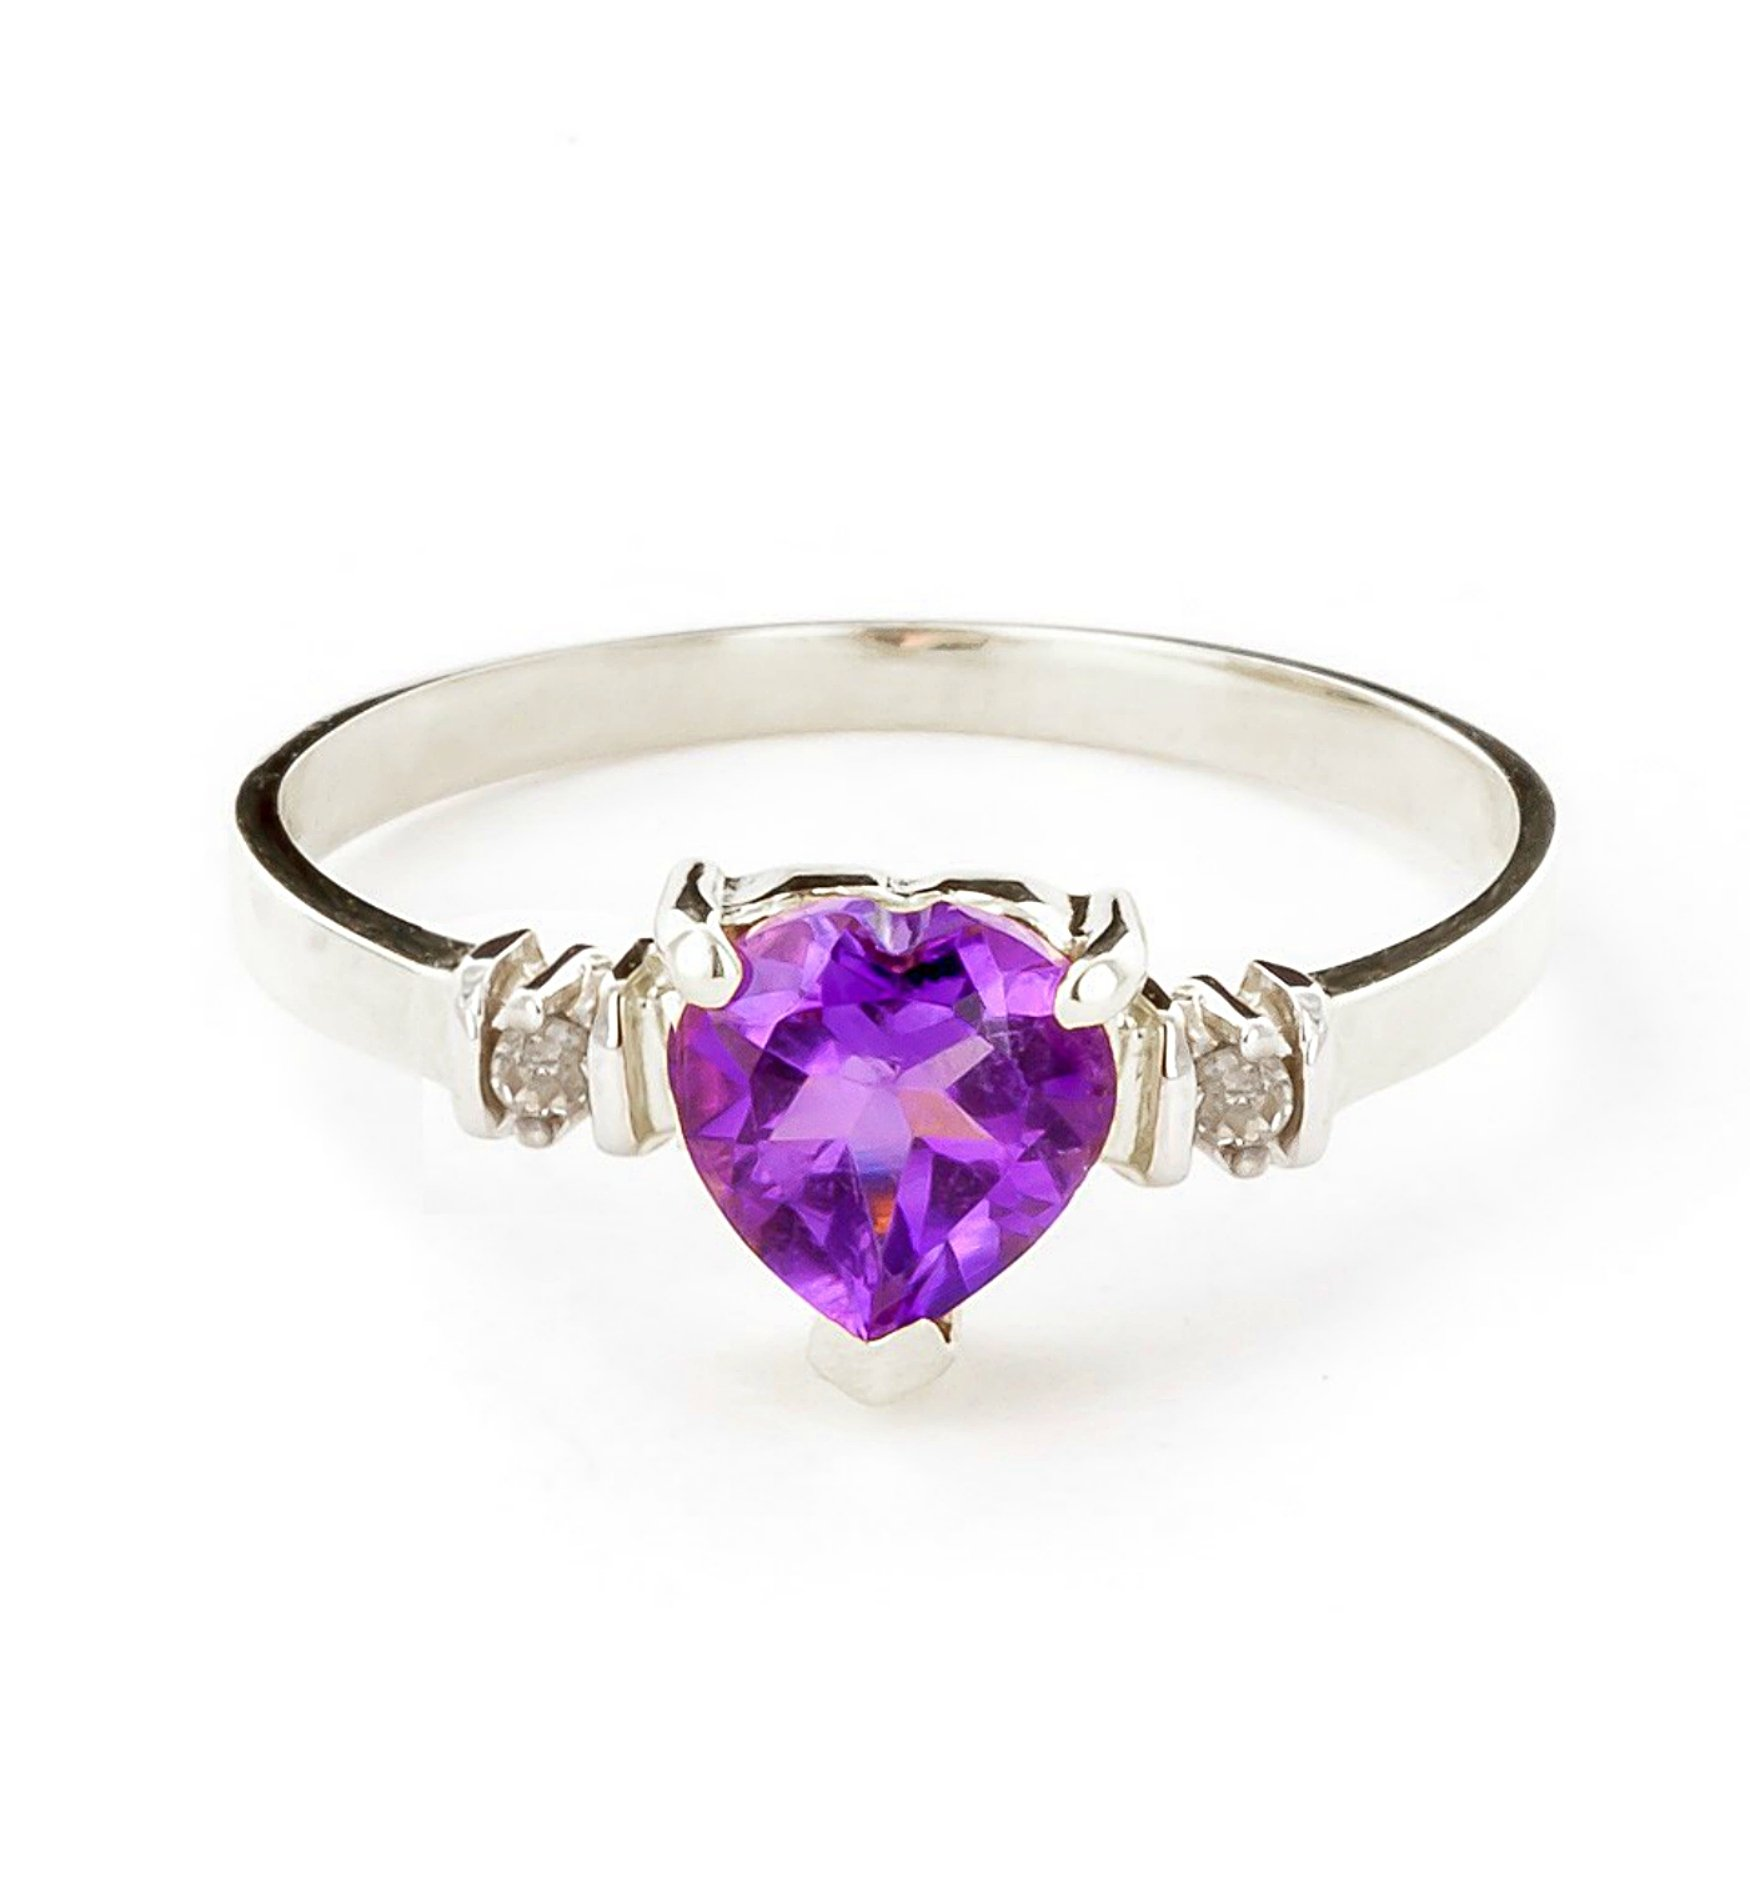 14k White Gold Ring with Genuine Diamonds and Natural Heart-shaped Purple Amethyst - Size 11